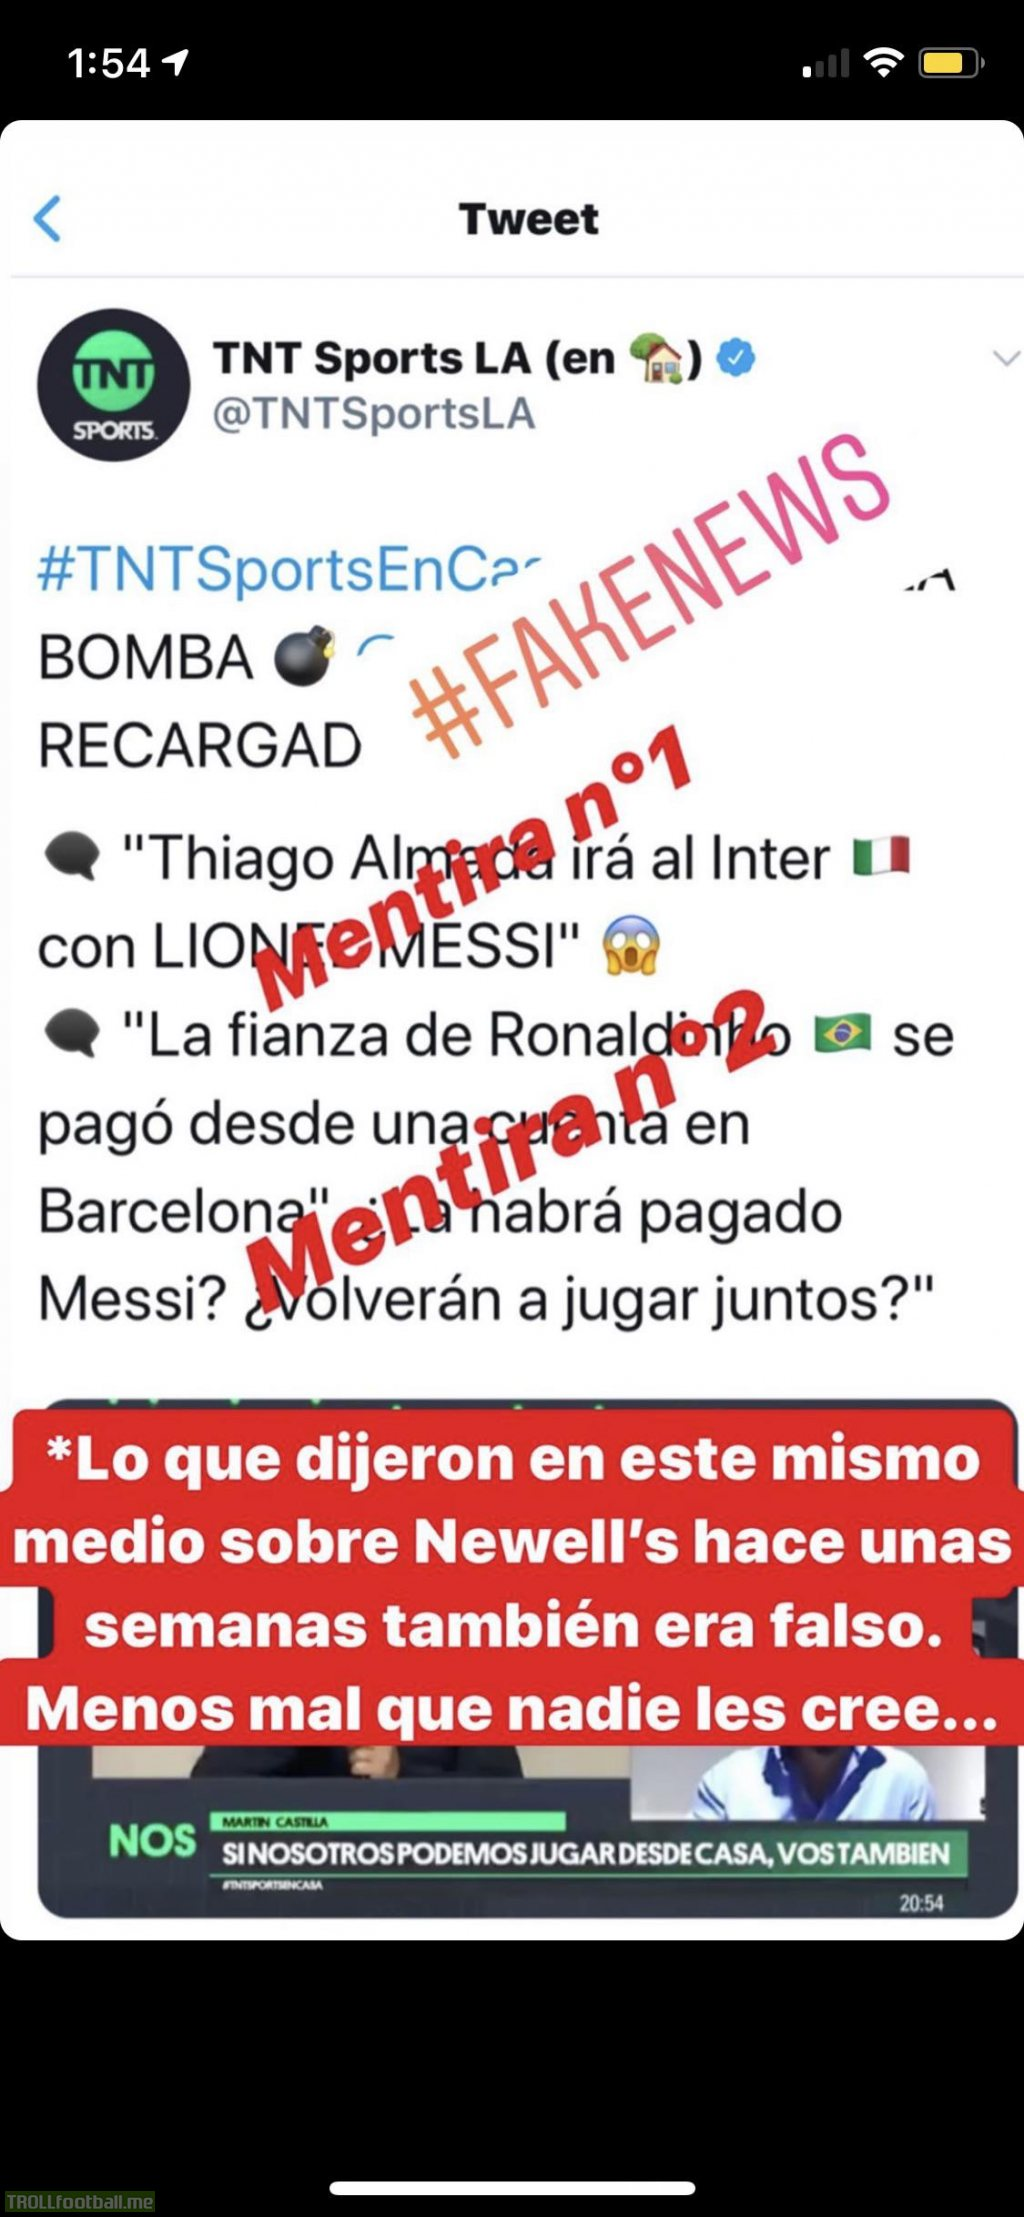 Messi calls out TNT Sports rumours of him going to inter along with Thiago Alcántara, as well as a rumour suggesting he paid Ronaldinhos bail so they could play together again.